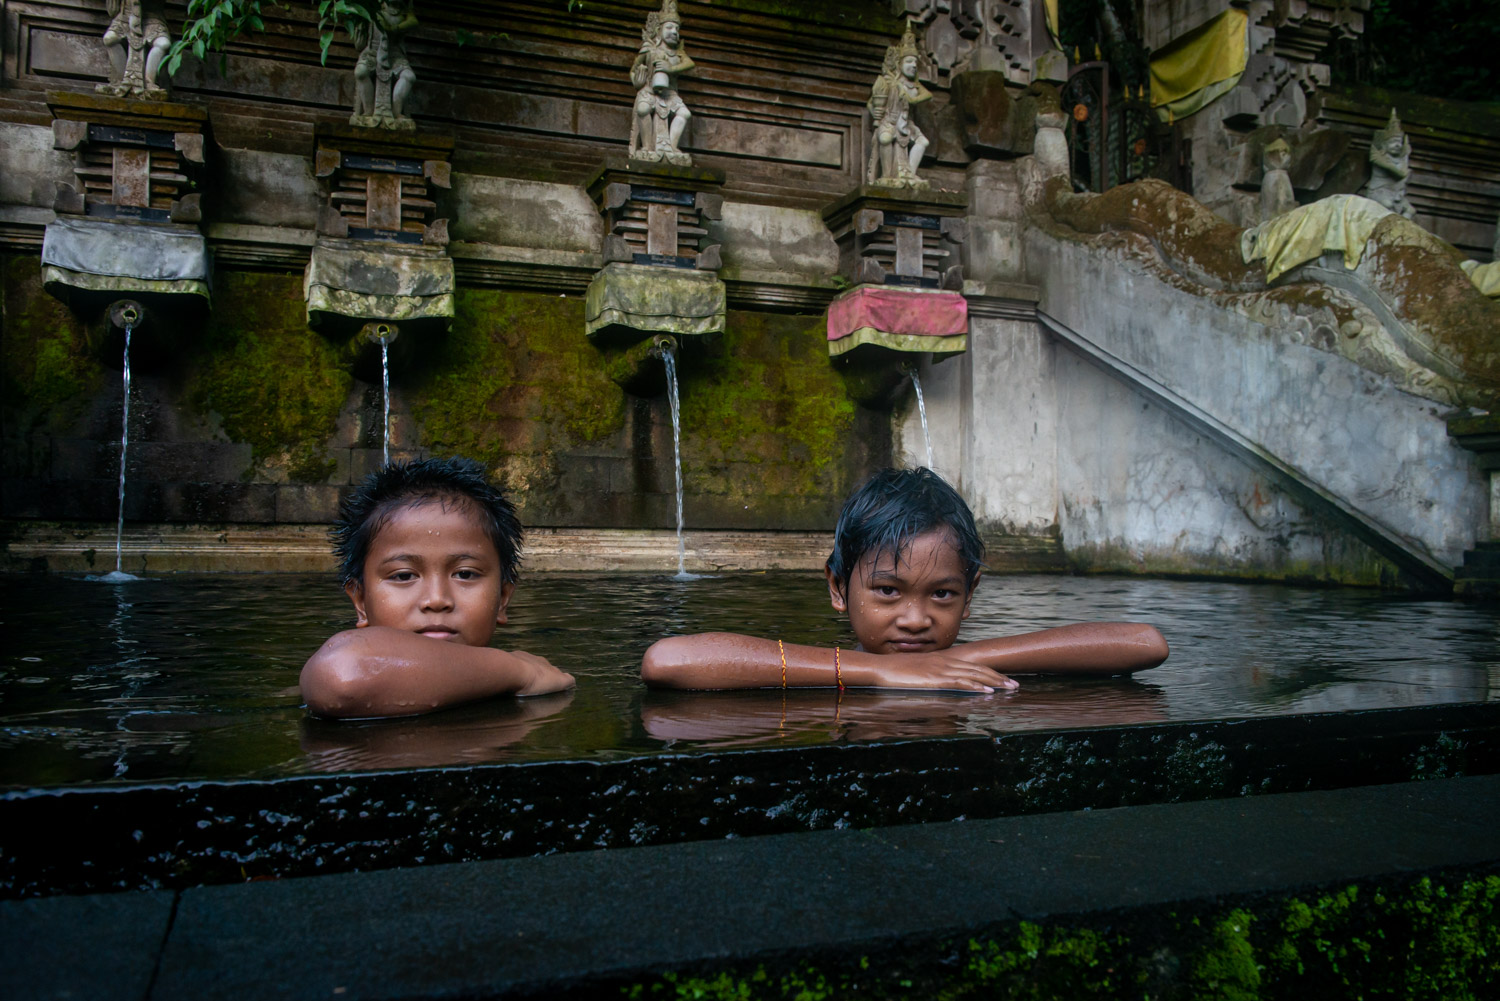 Portrait of kids in a water temple in Bali, Indonesia.